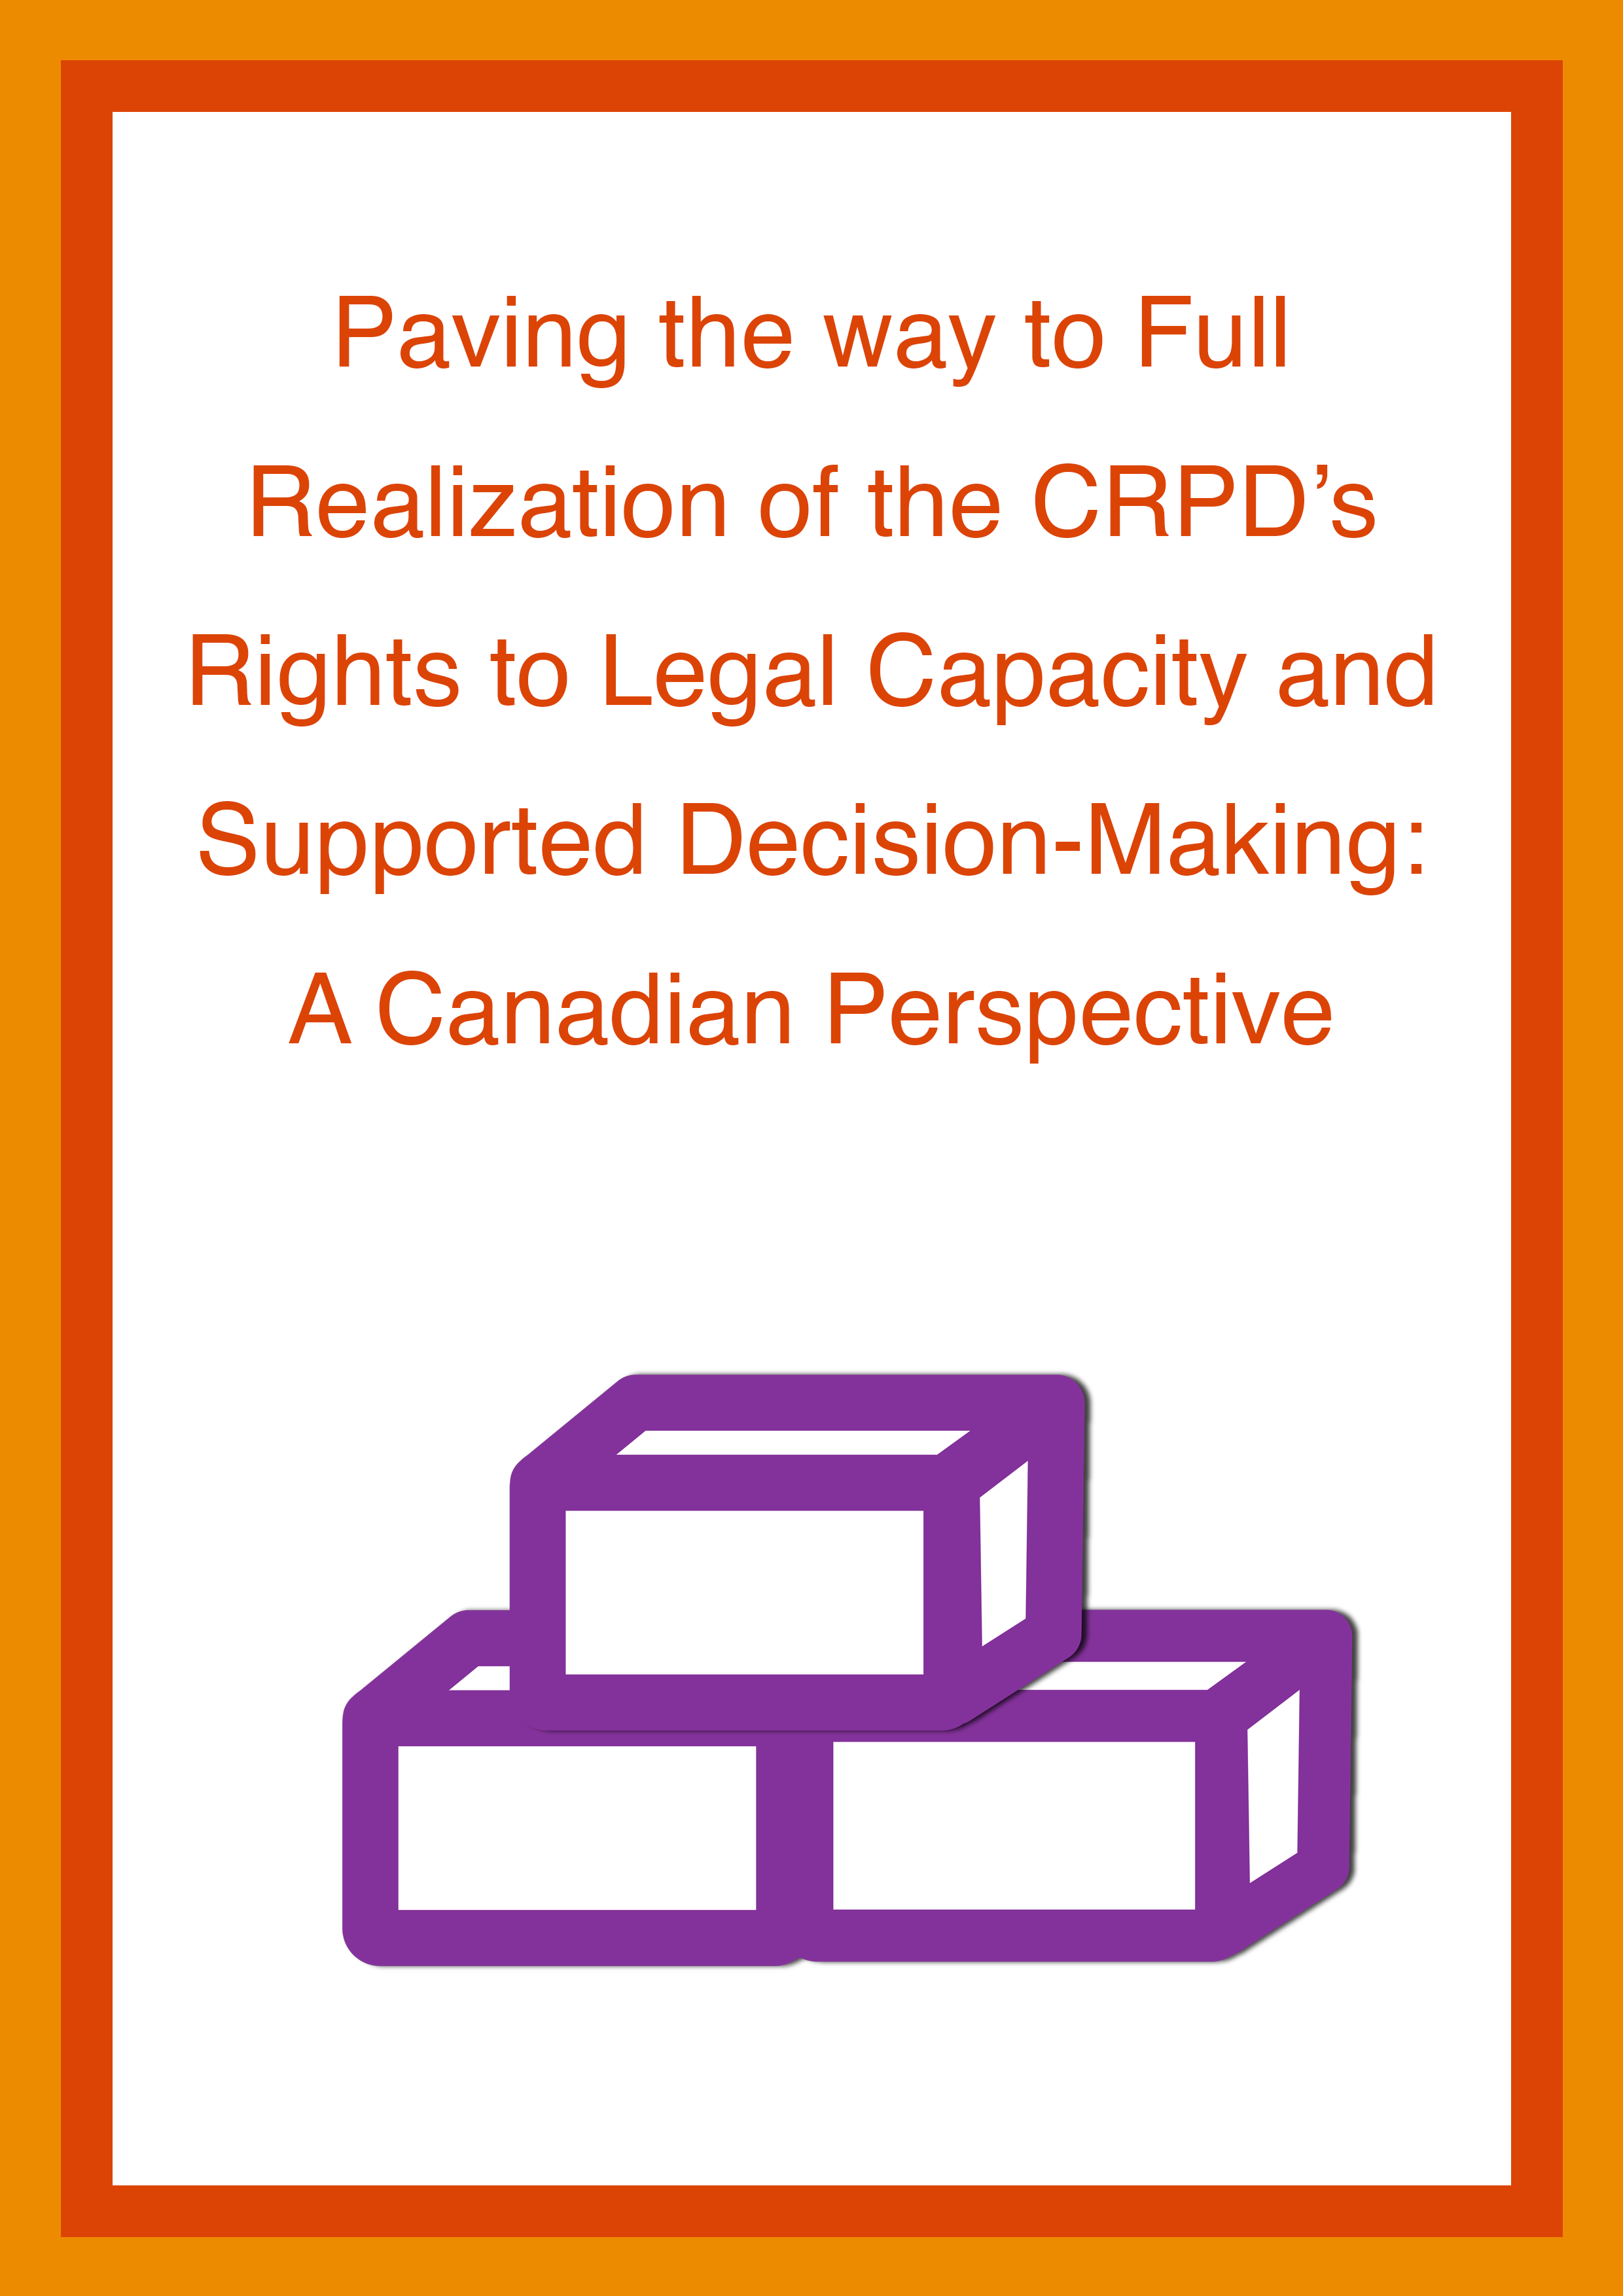 Cover art for: Paving the way to Full Realization of the CRPD's Rights to Legal Capacity and Supported Decision-Making: A Canadian Perspective